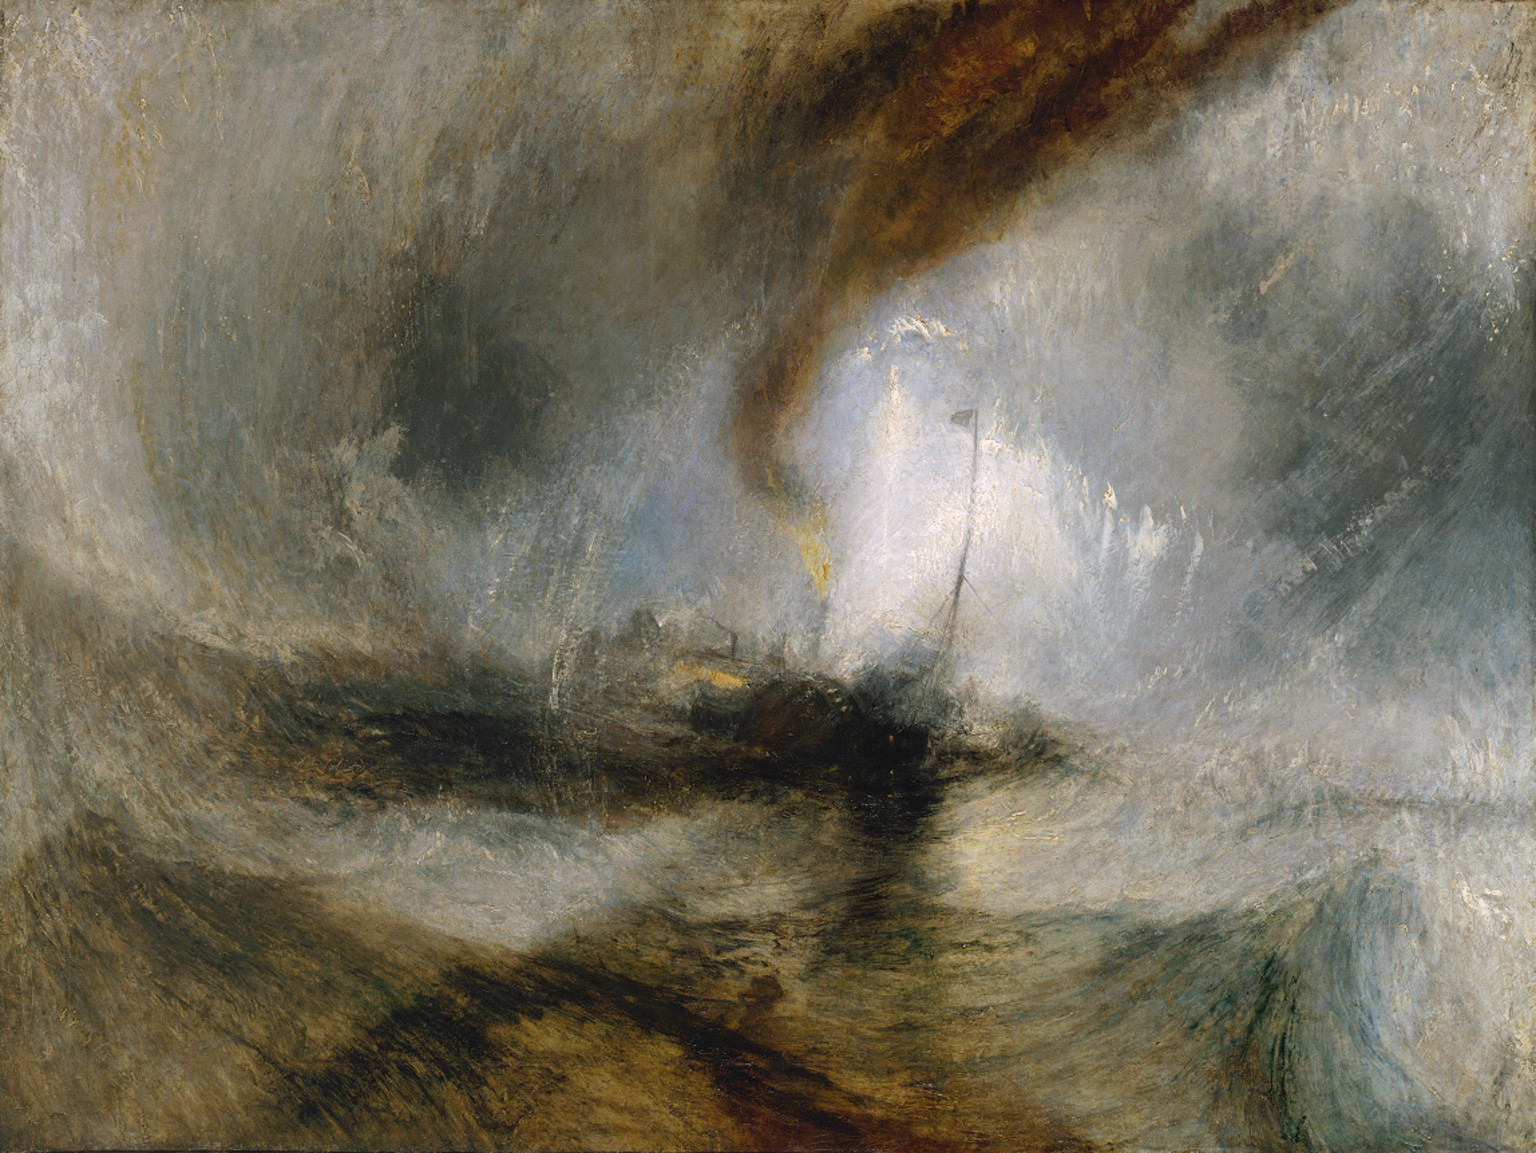 Joseph Mallord William Turner,  Snow Storm - Steam-Boat off a Harbour's Mouth , exhibited 1842